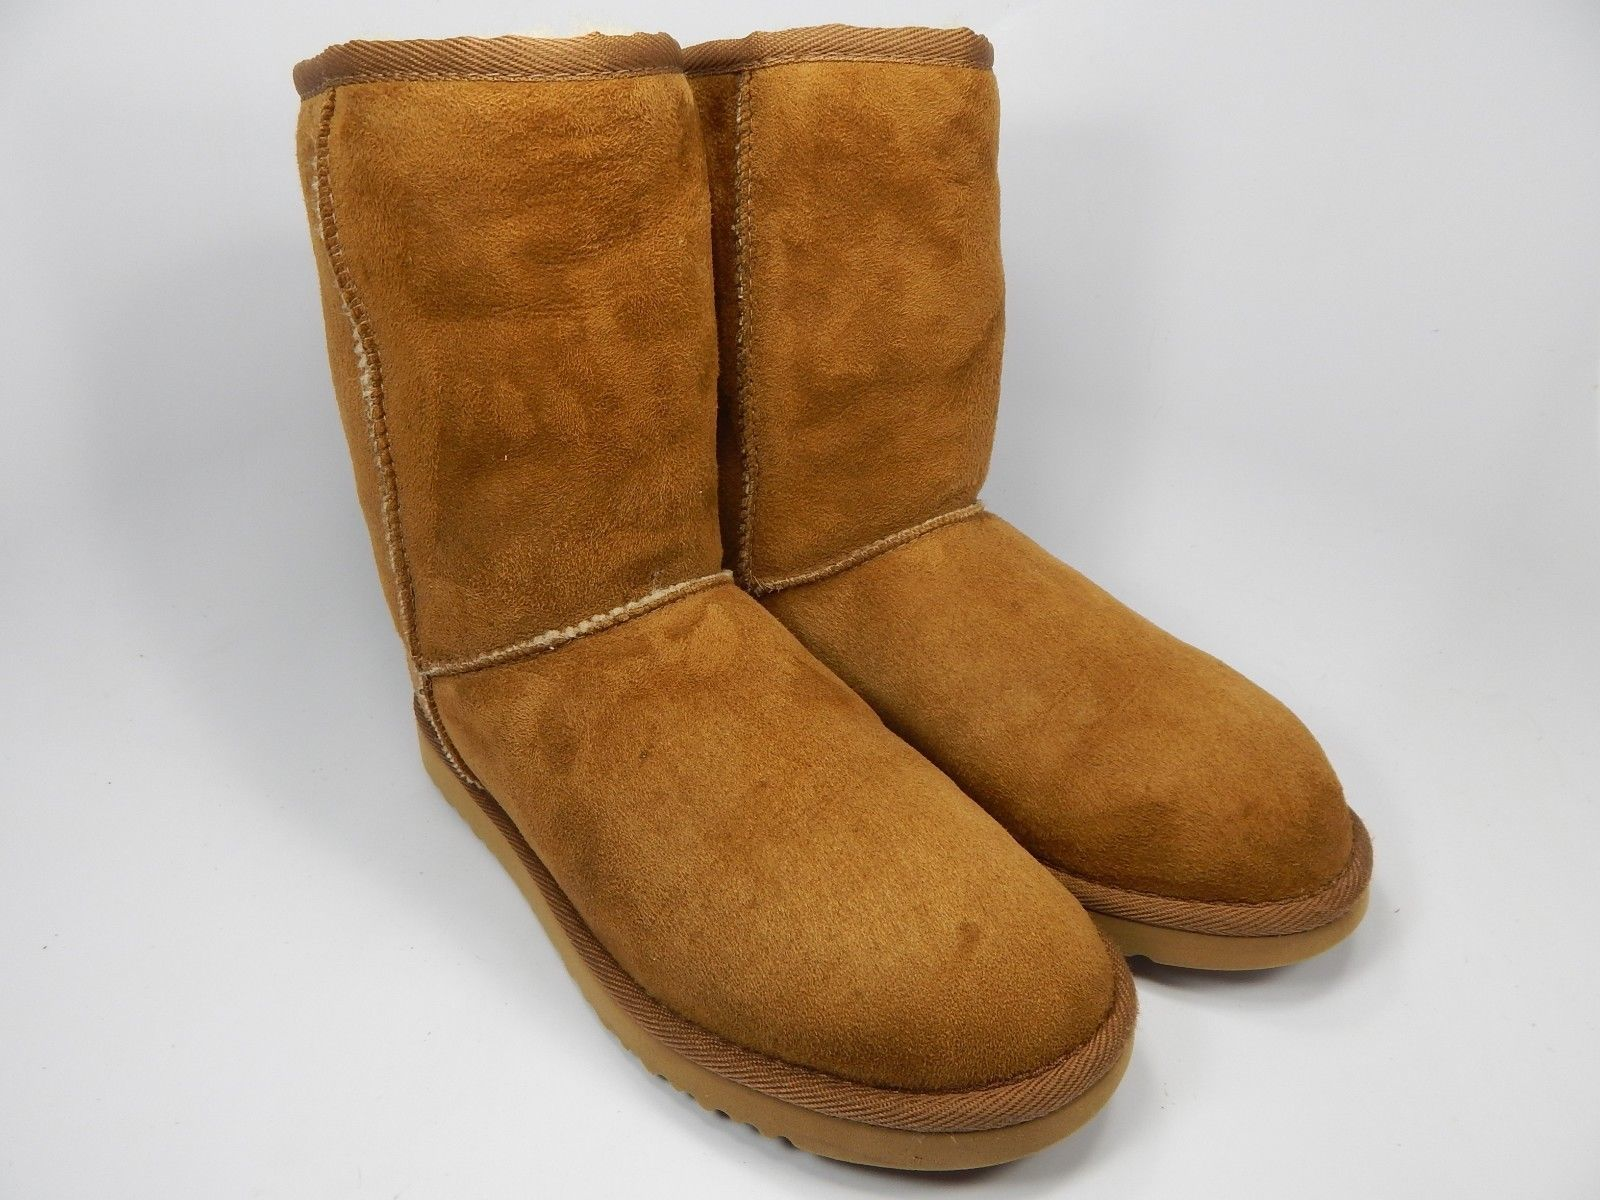 277e5eb29b8 UGG Classic Short Sheepskin Chestnut Boots and 50 similar items